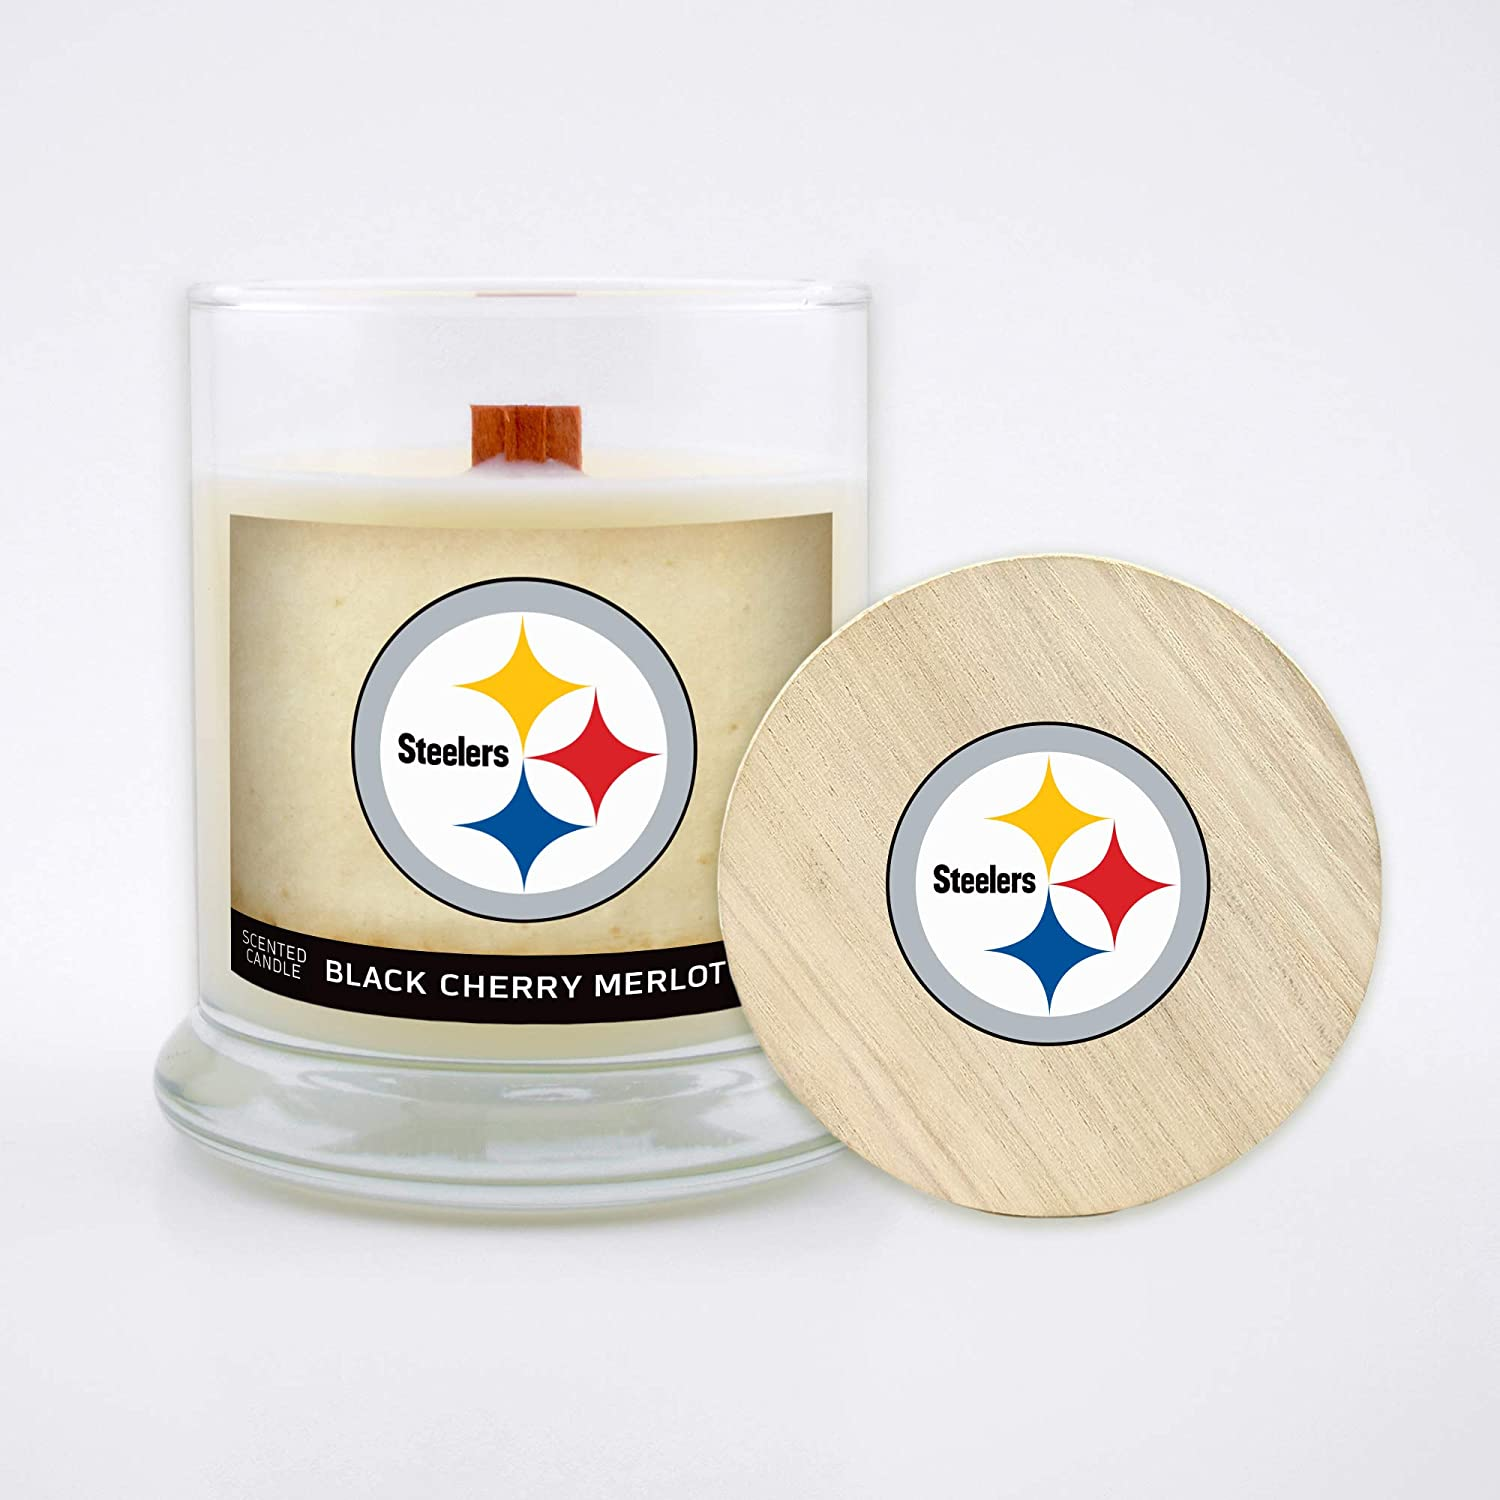 Black Cherry Merlot Worthy Promo NFL Pittsburgh Steelers Gifts 8oz Scented Candle Soy Wax w//Wood Wick and Lid